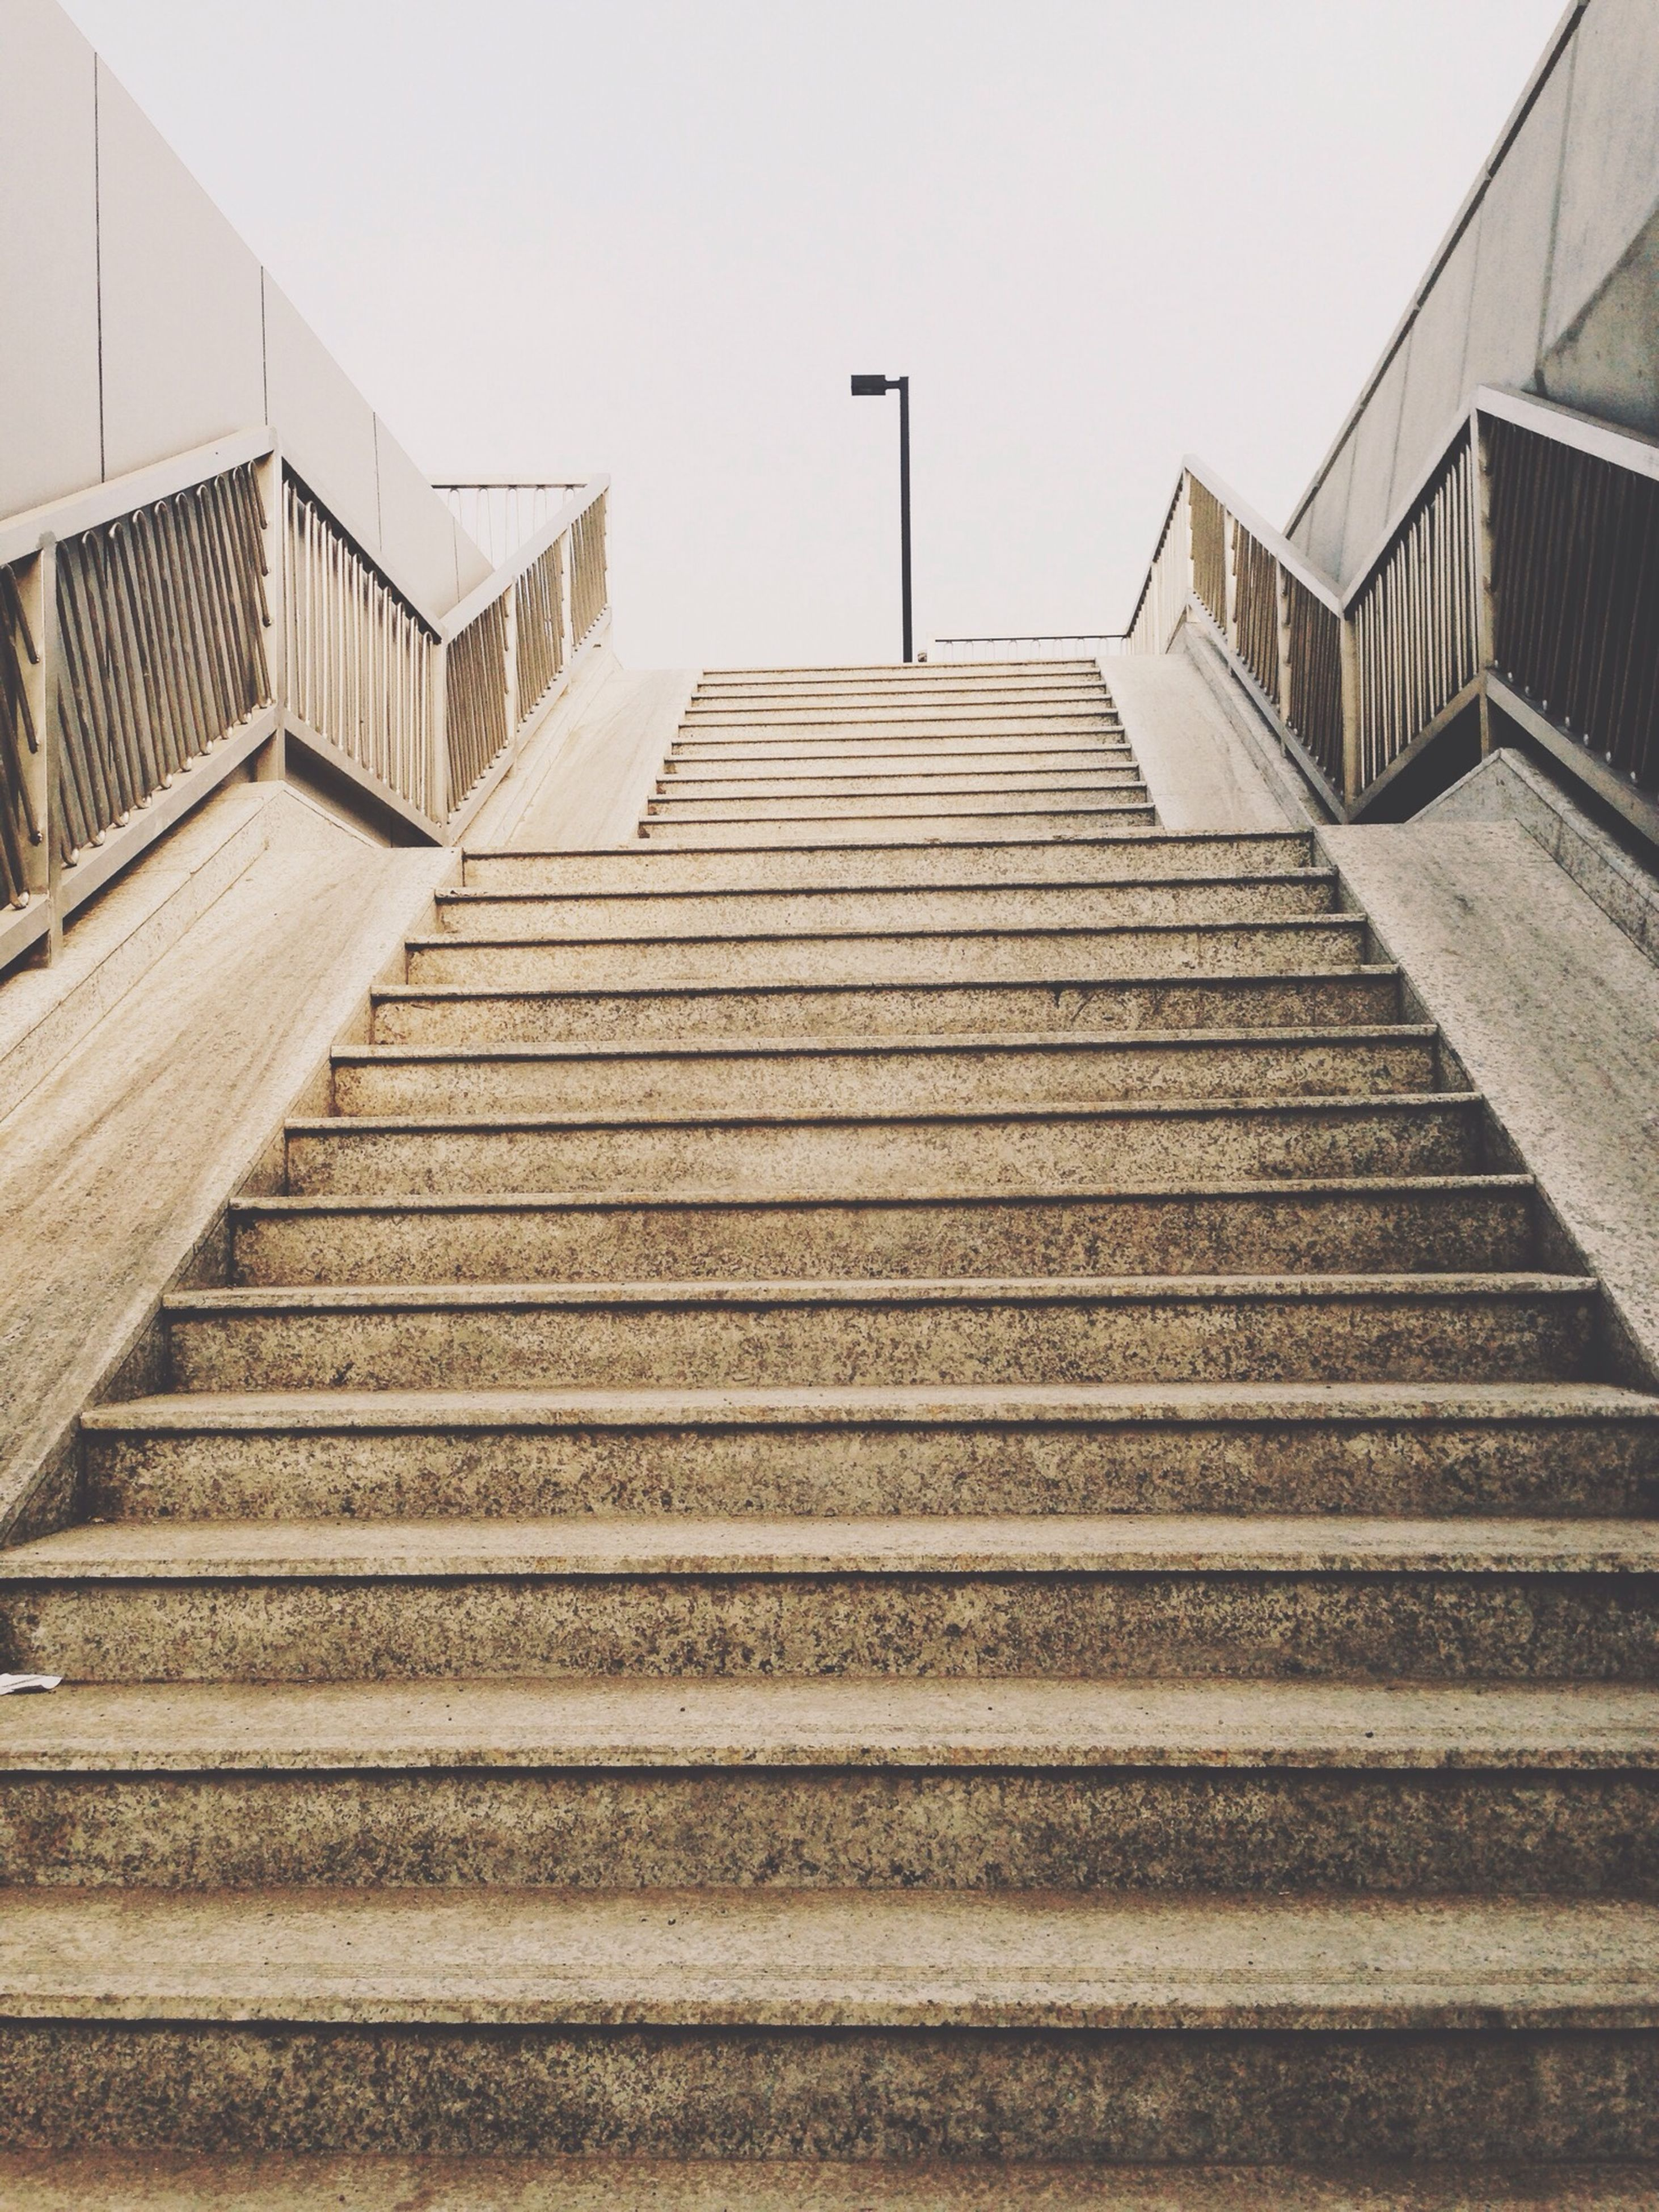 architecture, built structure, building exterior, low angle view, steps, steps and staircases, staircase, the way forward, railing, clear sky, stairs, diminishing perspective, sky, building, day, no people, outdoors, roof, wall - building feature, pattern